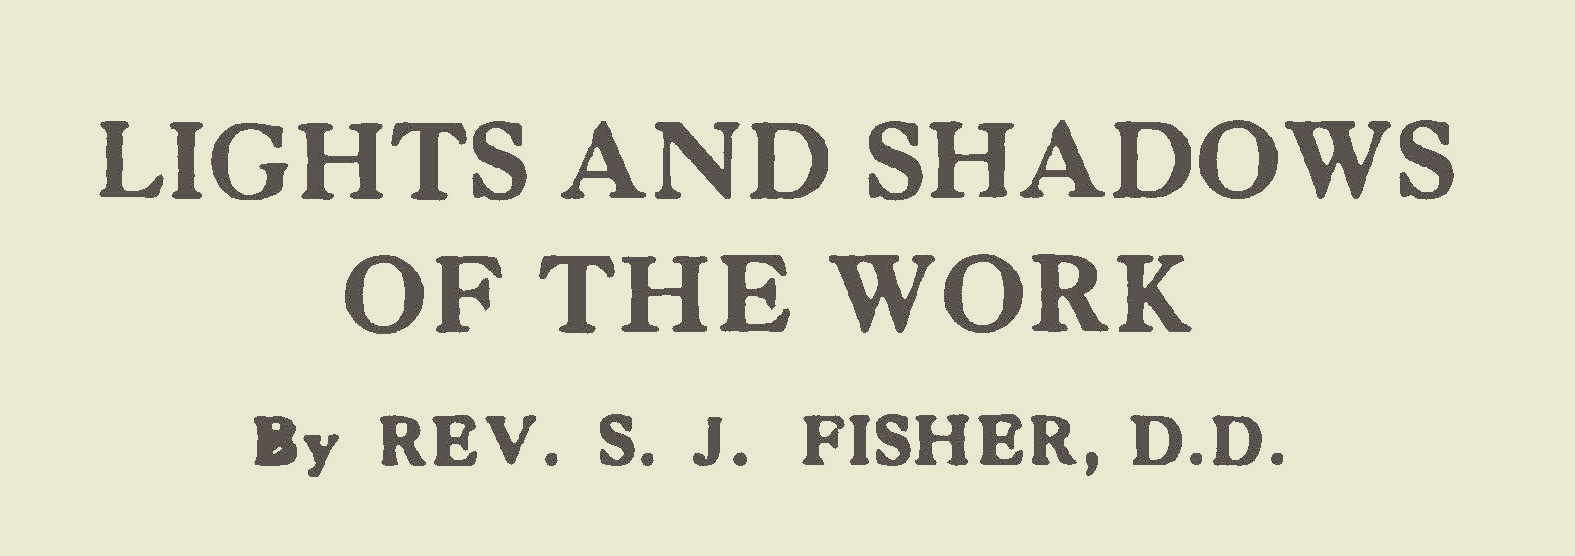 Fisher, Samuel Jackson, Lights and Shadows of the Work Title Page.jpg